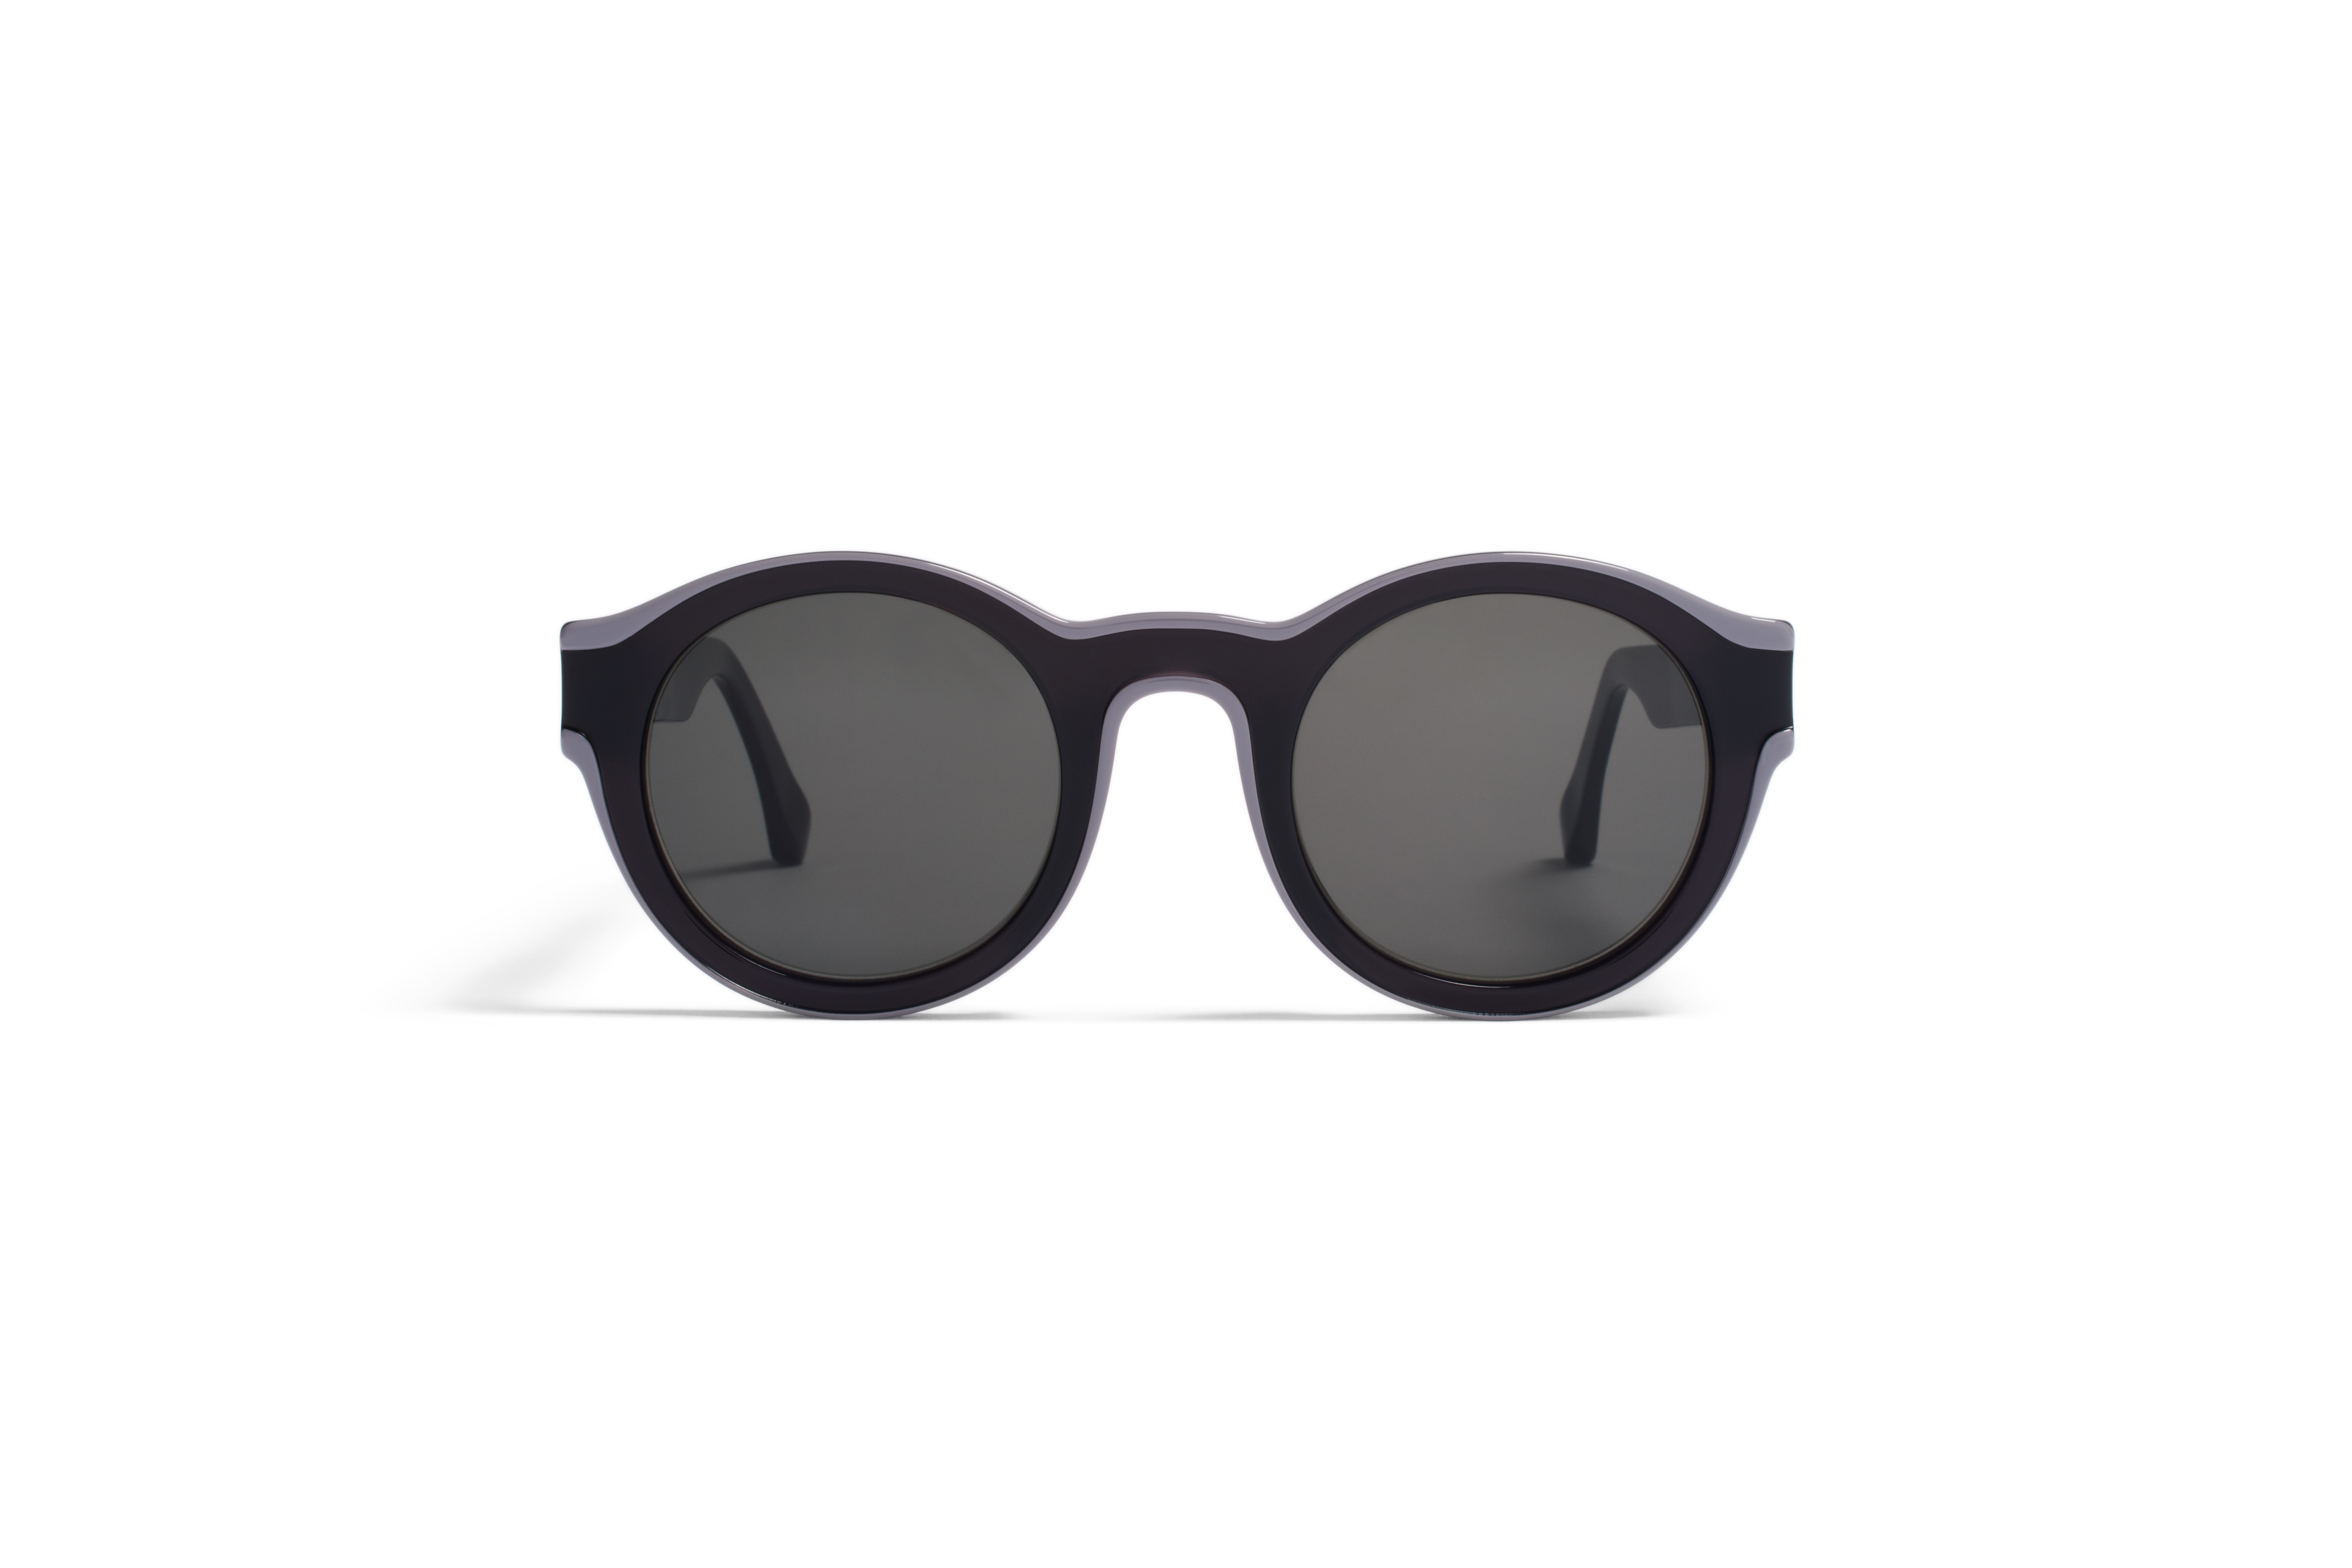 MYKITA Mmm Sun Mmdual002 D1 Black Grey Darkgrey So5707c5aa7a8fc